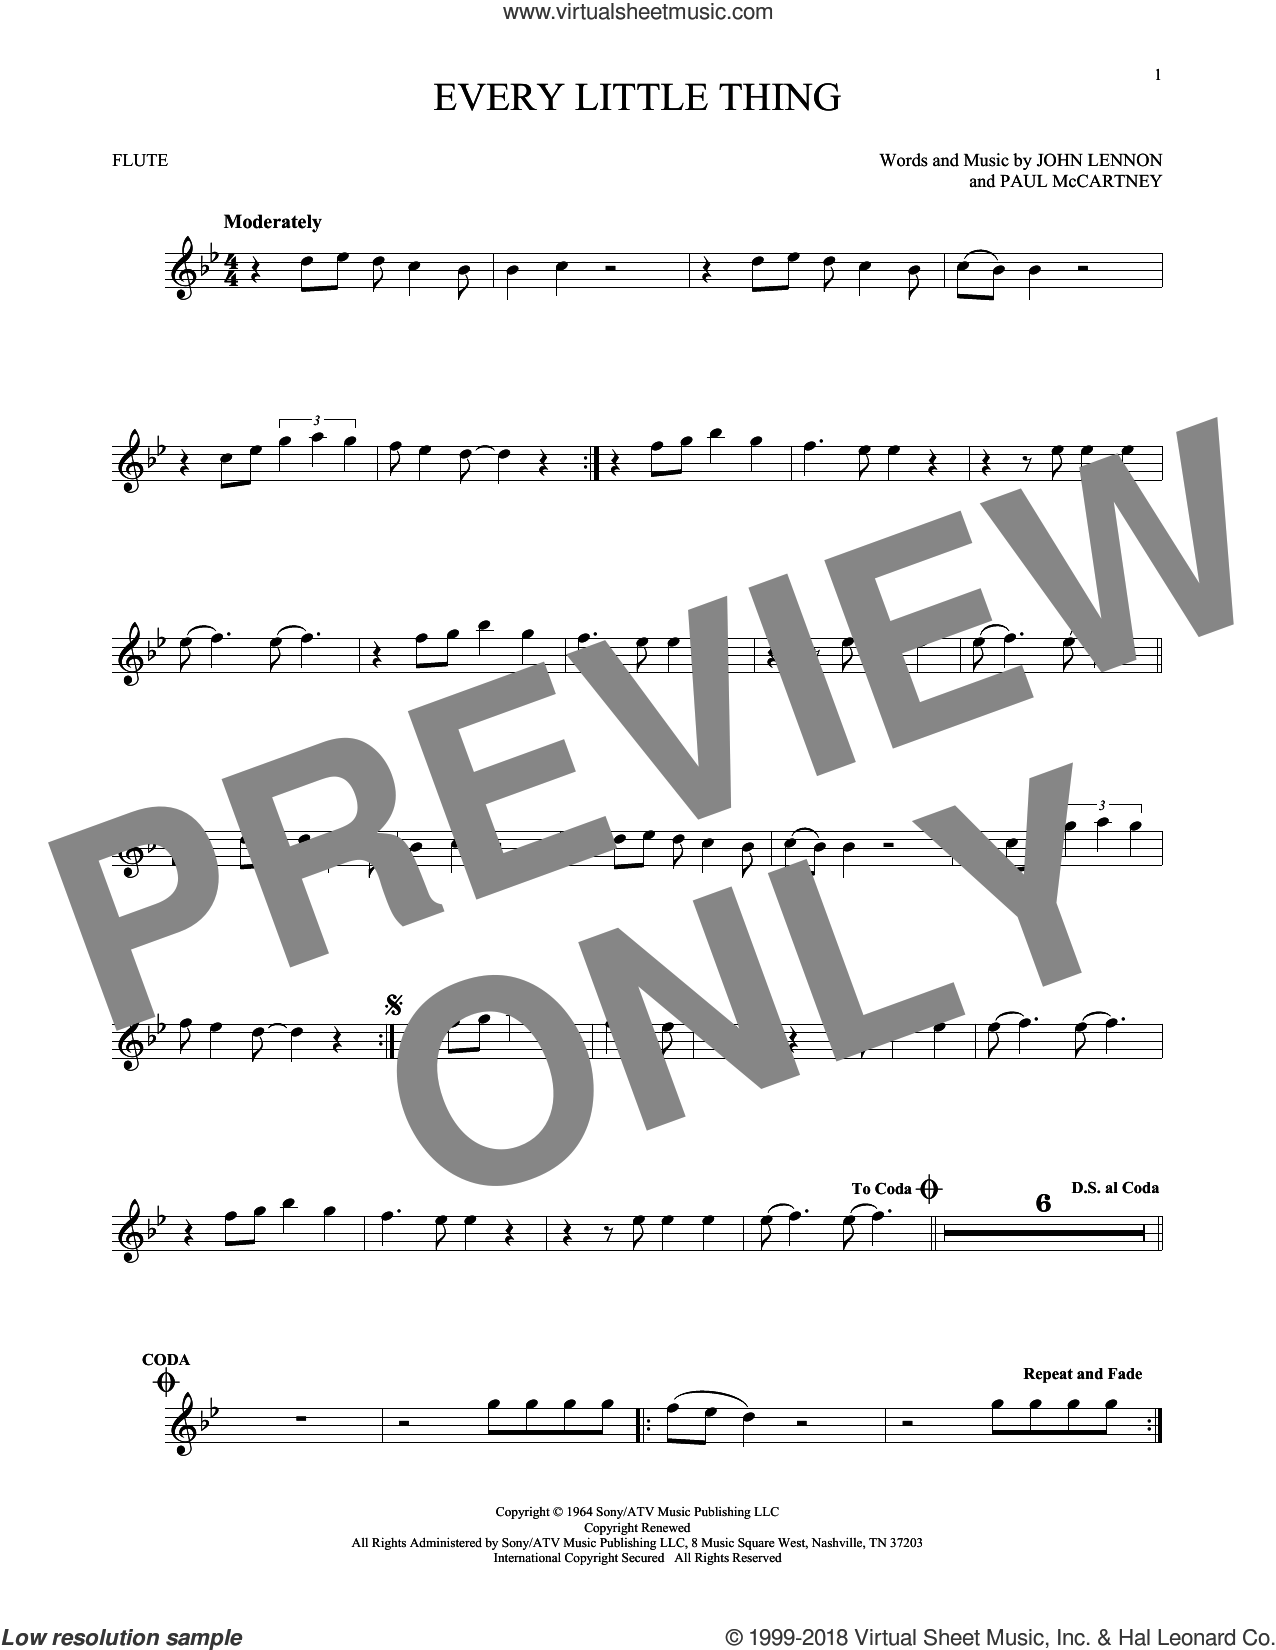 Every Little Thing sheet music for flute solo by The Beatles, John Lennon and Paul McCartney, intermediate skill level